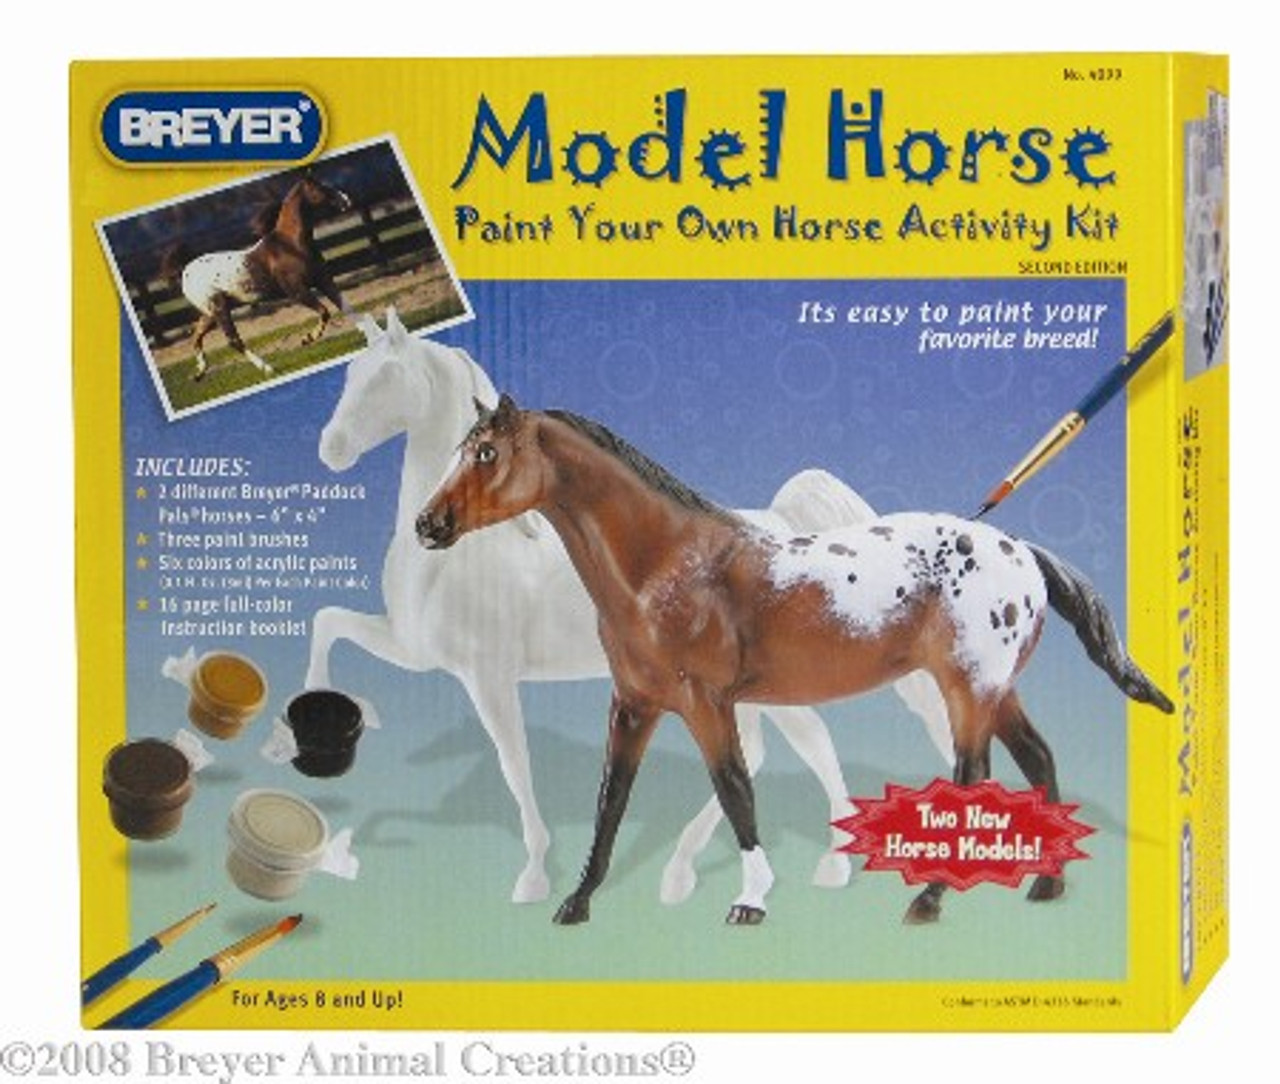 Arts Crafts Breyer Model Horse Paint Your Own Horse Activity Kit Toys Games Arts Crafts